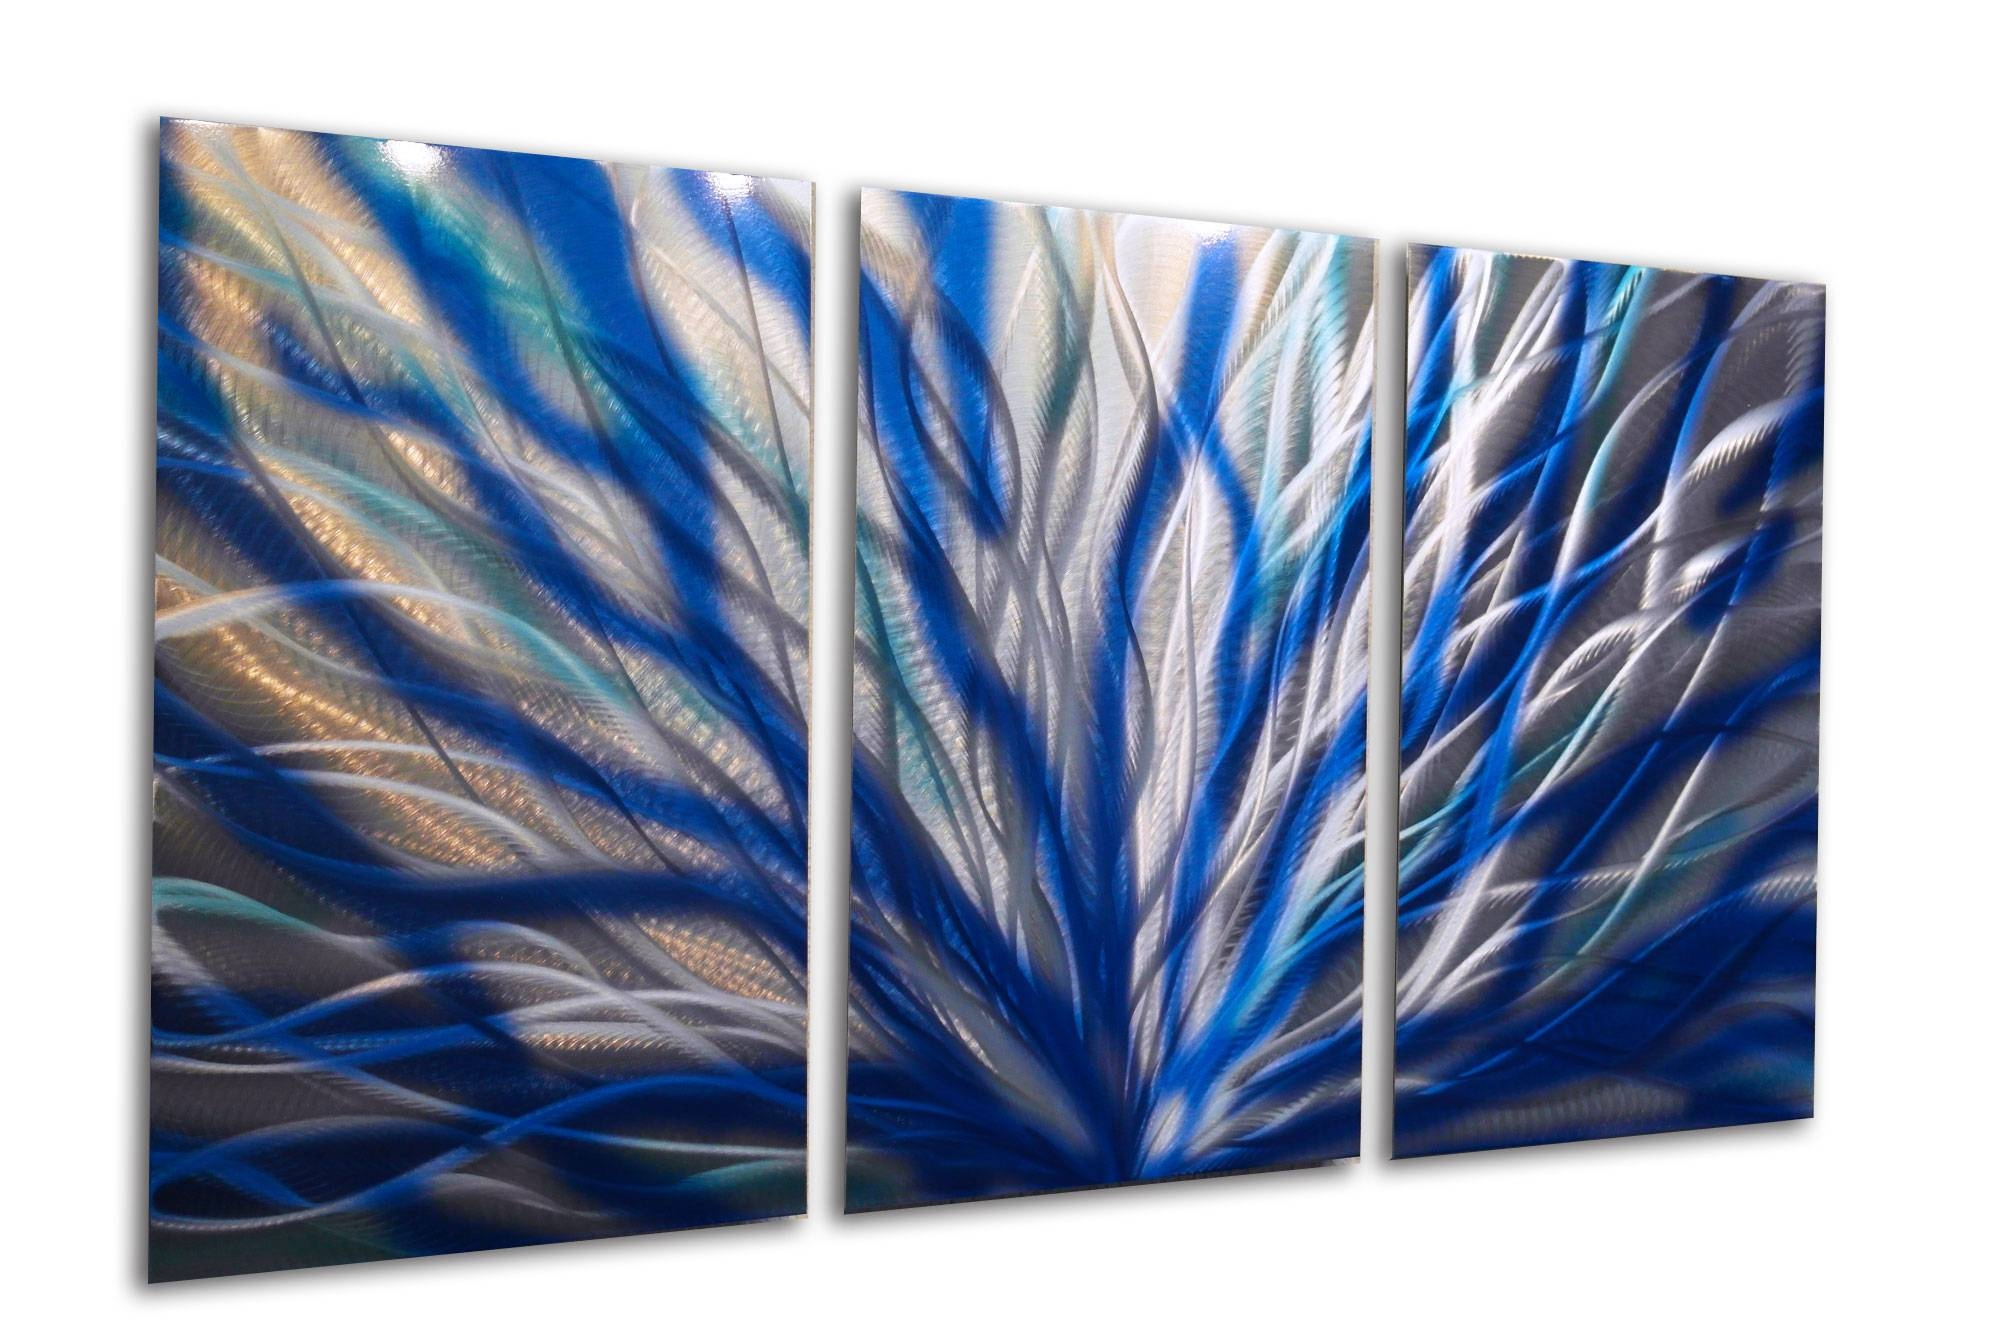 Radiance Blue 47 V2 – Metal Wall Art Abstract Sculpture Modern Within Most Recent Blue Wall Art (View 10 of 20)